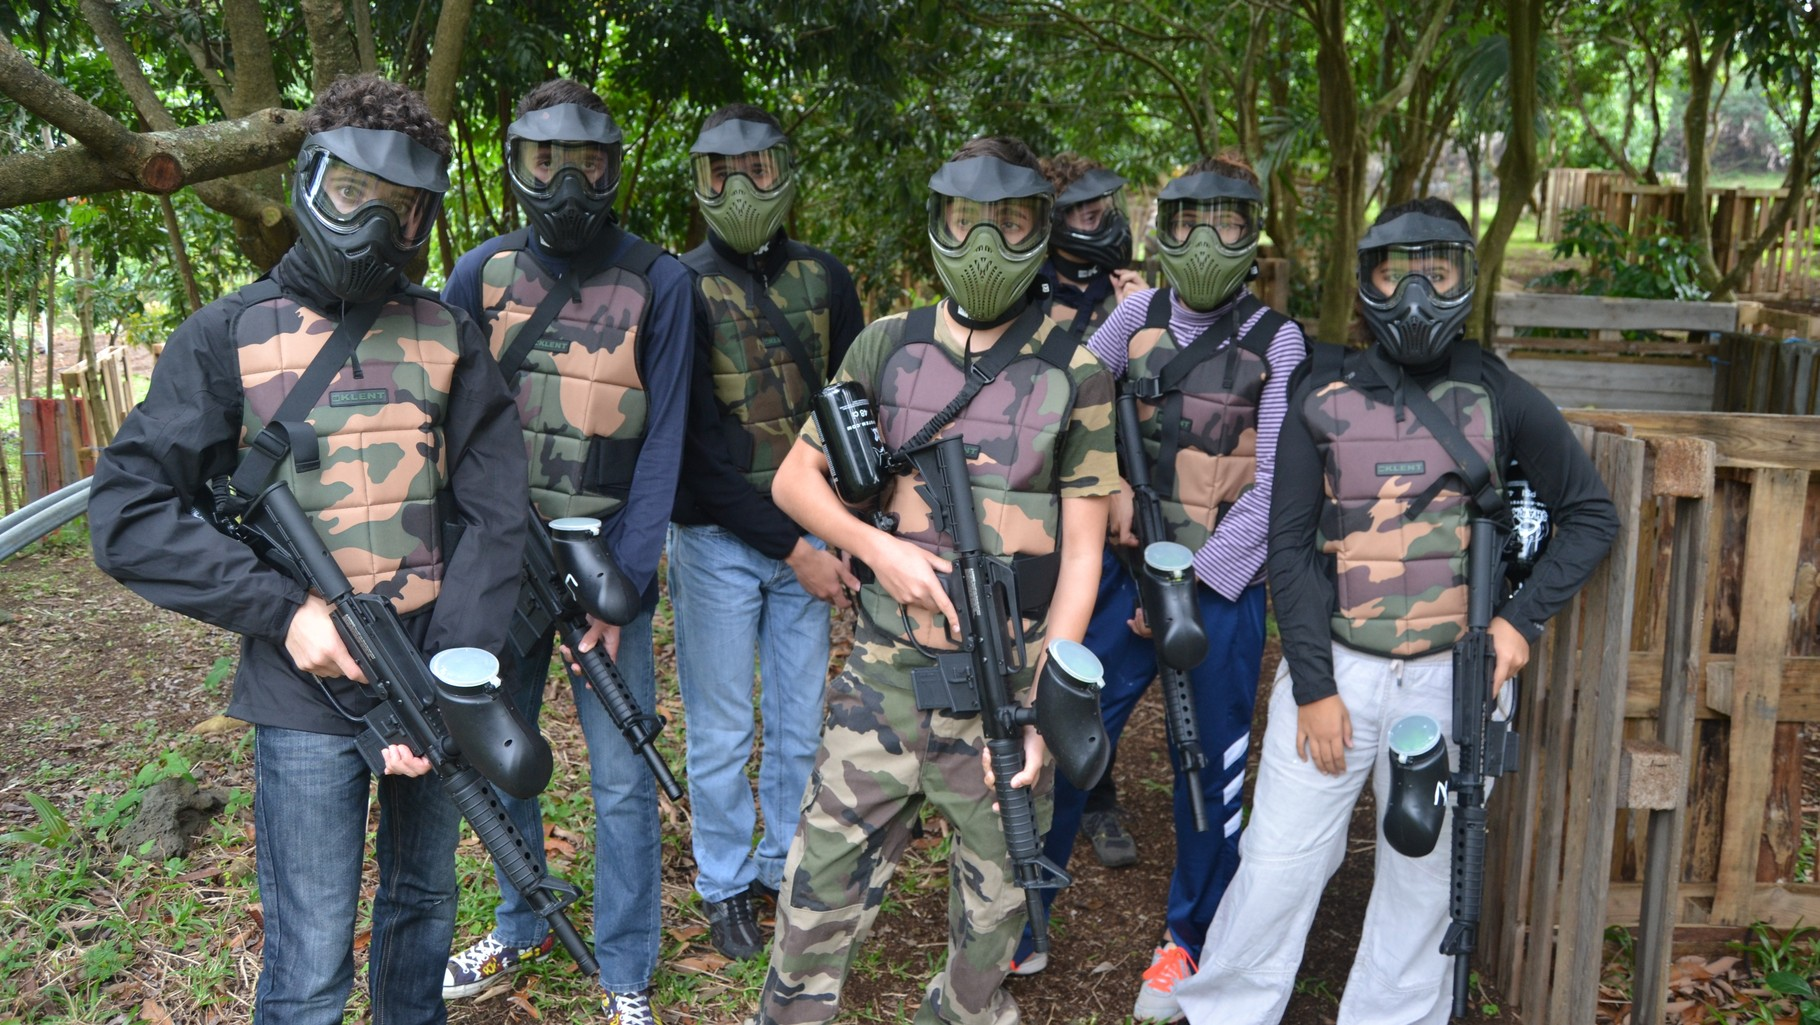 Paintball reunion